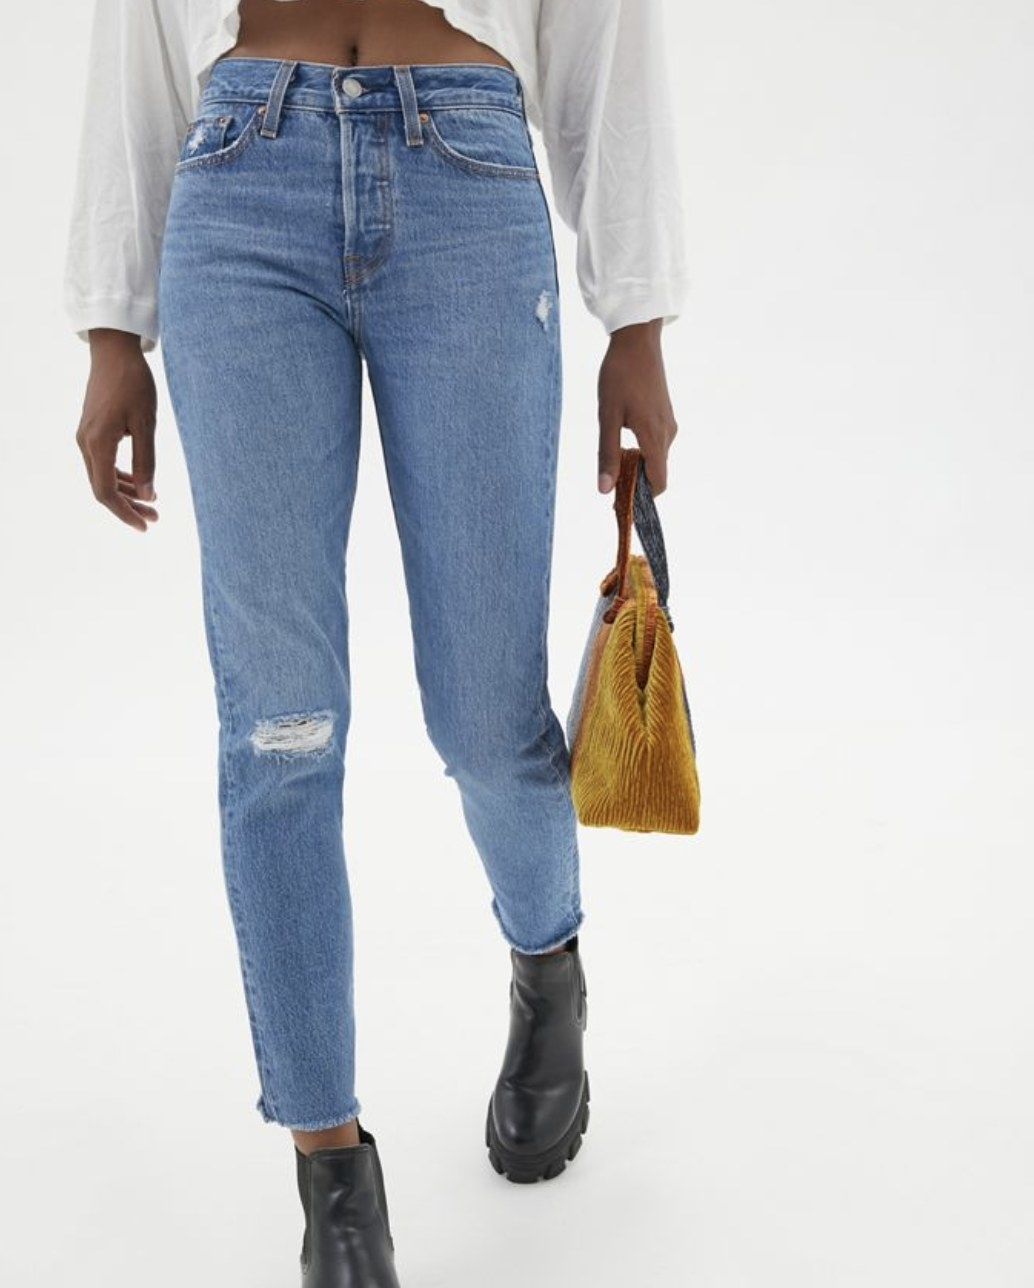 Model is wearing blue jeans, black boots, and a white top